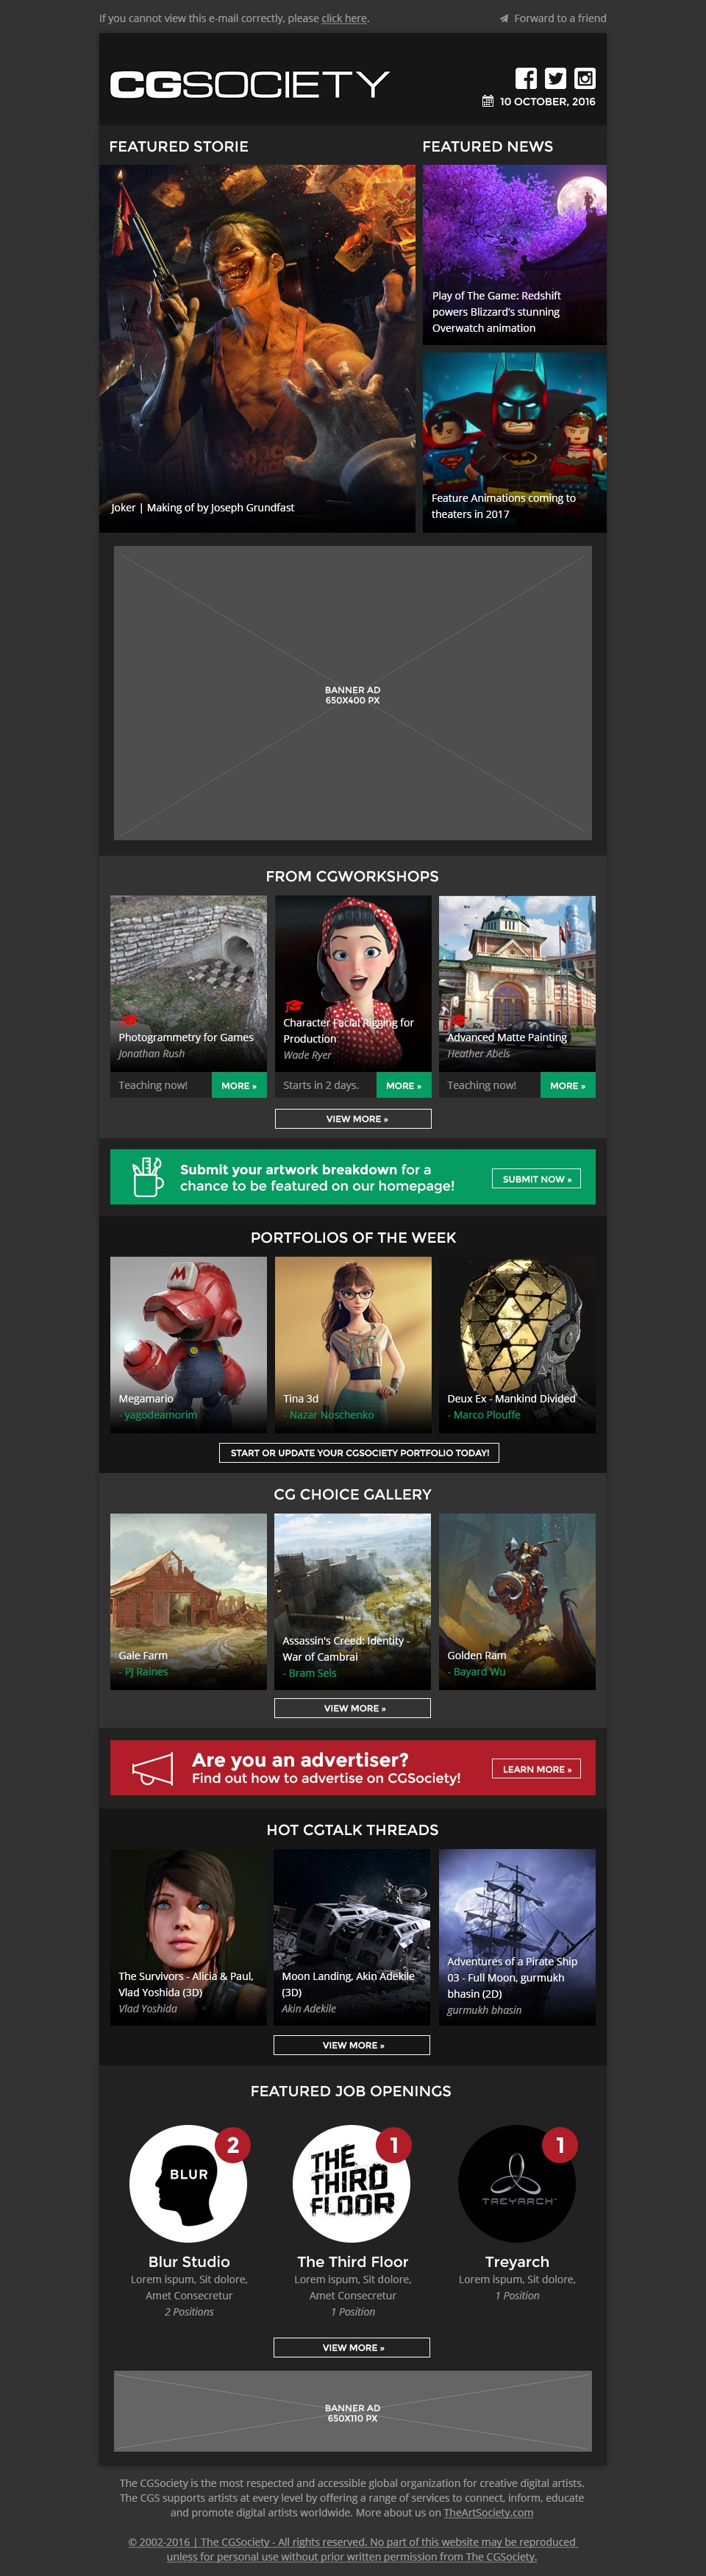 Design Creative and Dynamic Newsletter for prominent Digital Art Website, CGSociety!